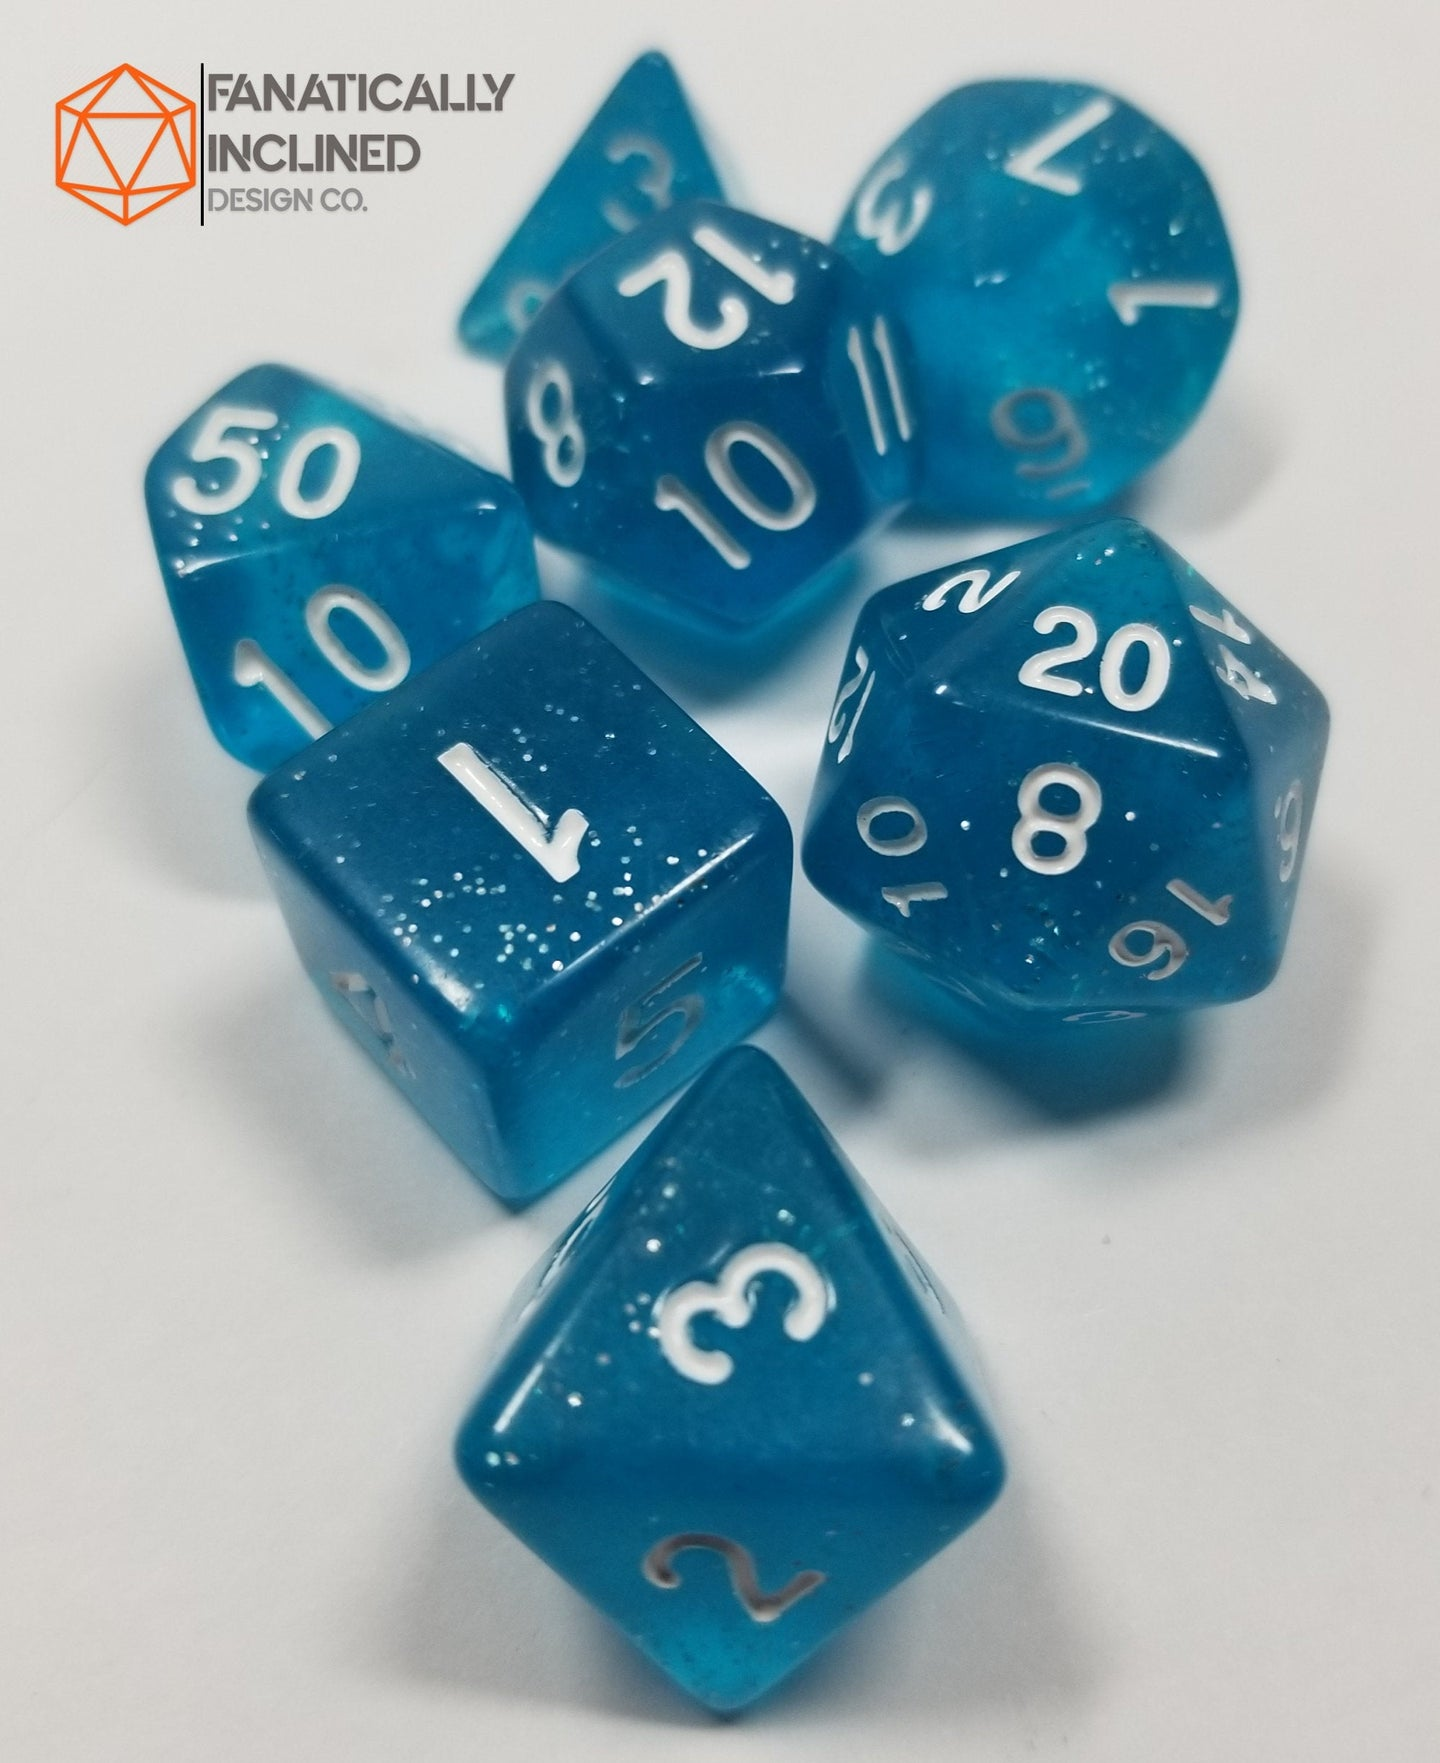 Light Blue Glittery 7pc Dice Set